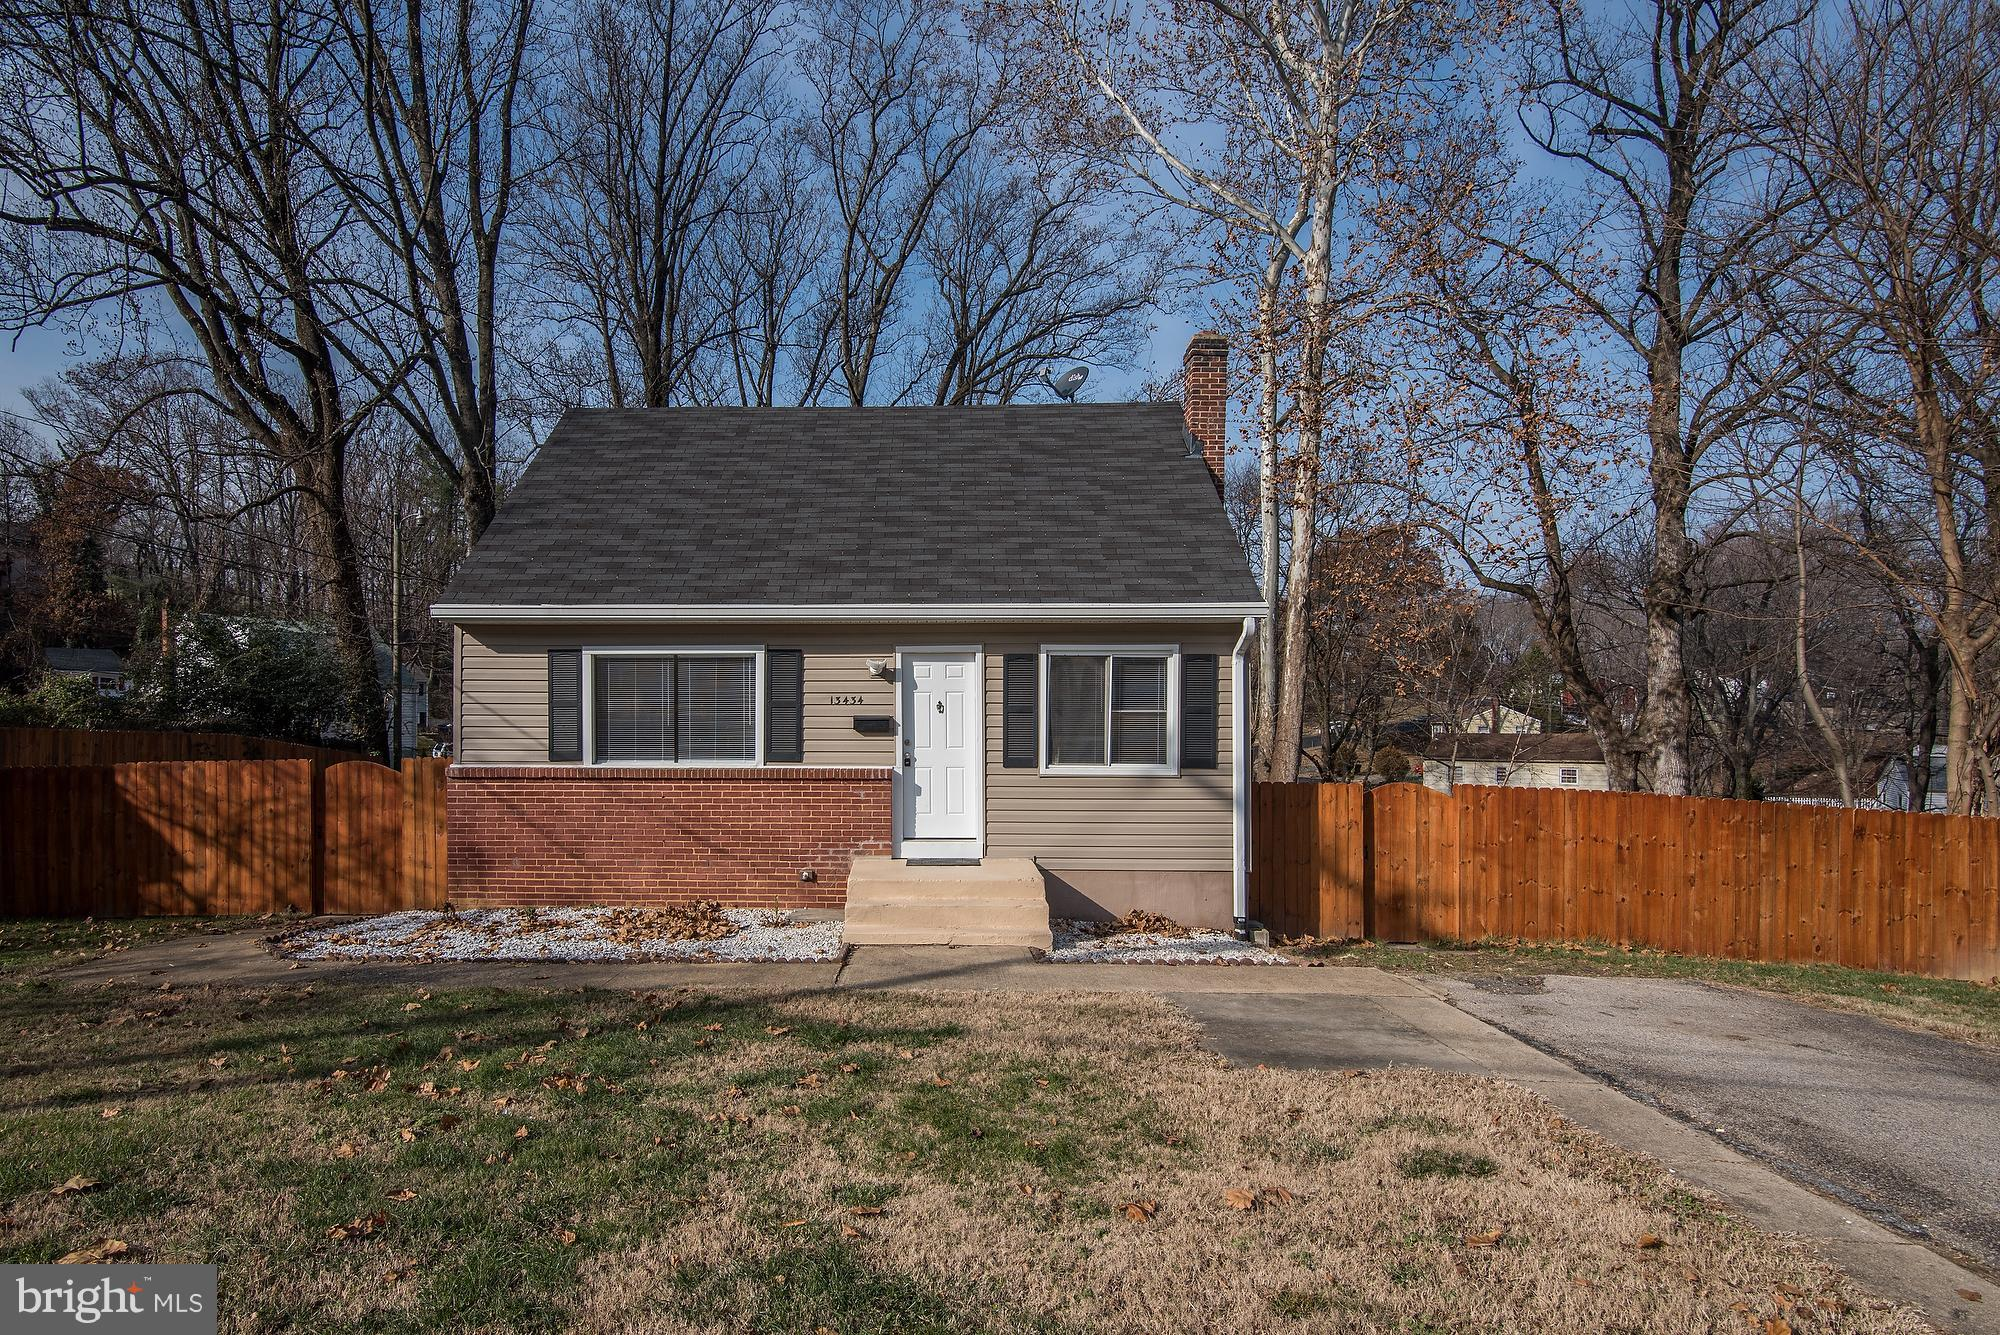 Large Remodeled Cape Cod With Addition, Fenced Back Yard, New Vinyl Siding, New Roof, Newer HVAC,  Re-Finished HW Floors, Remodeled Bathrooms, House Offers 3 Levels, Main Level Large Extended Master Bedroom With Lots of Closet Space, Full Bathroom, Large Family Room With Lots of Light, Separate Dining Room, Kitchen With Additional Room In Rear Which Leads to Large Rear Deck Overlooking Private Fenced Yard With New Retaining Wall, Upstairs Offer 2 Large Bedrooms With HW Floors and Full Remodeled Bathroom, Base Offer In-Law Suite Ideal For Family Member, Basement Has Separate Entrance With Sidewalk on Side, 2 Legal Bedrooms and Kitchen With Family Room, Outside Offer Private Back Yard With Great View, This Home Offers It ALL, Great For A Large Family, Ready To Move In, Hurry It Will Not Last Long